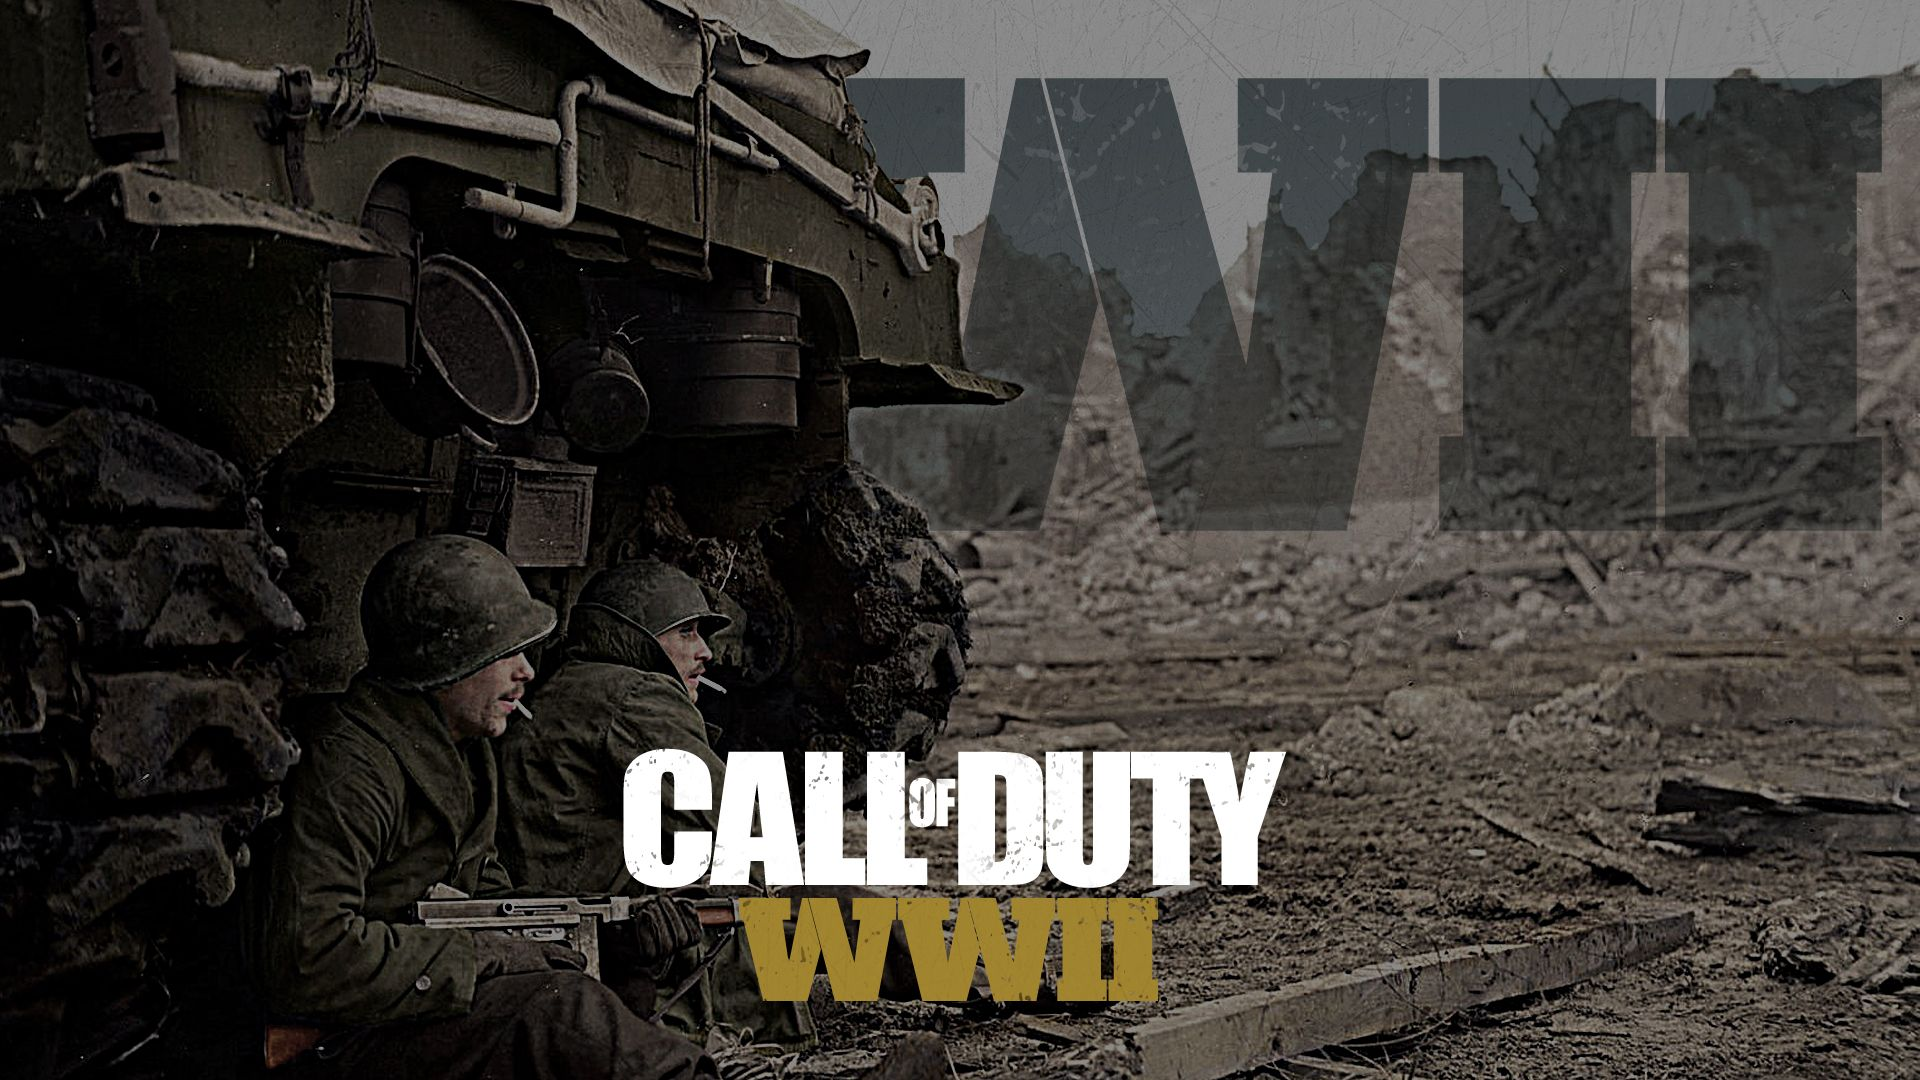 Call Of Duty World War 2 Wallpapers Top Free Call Of Duty World